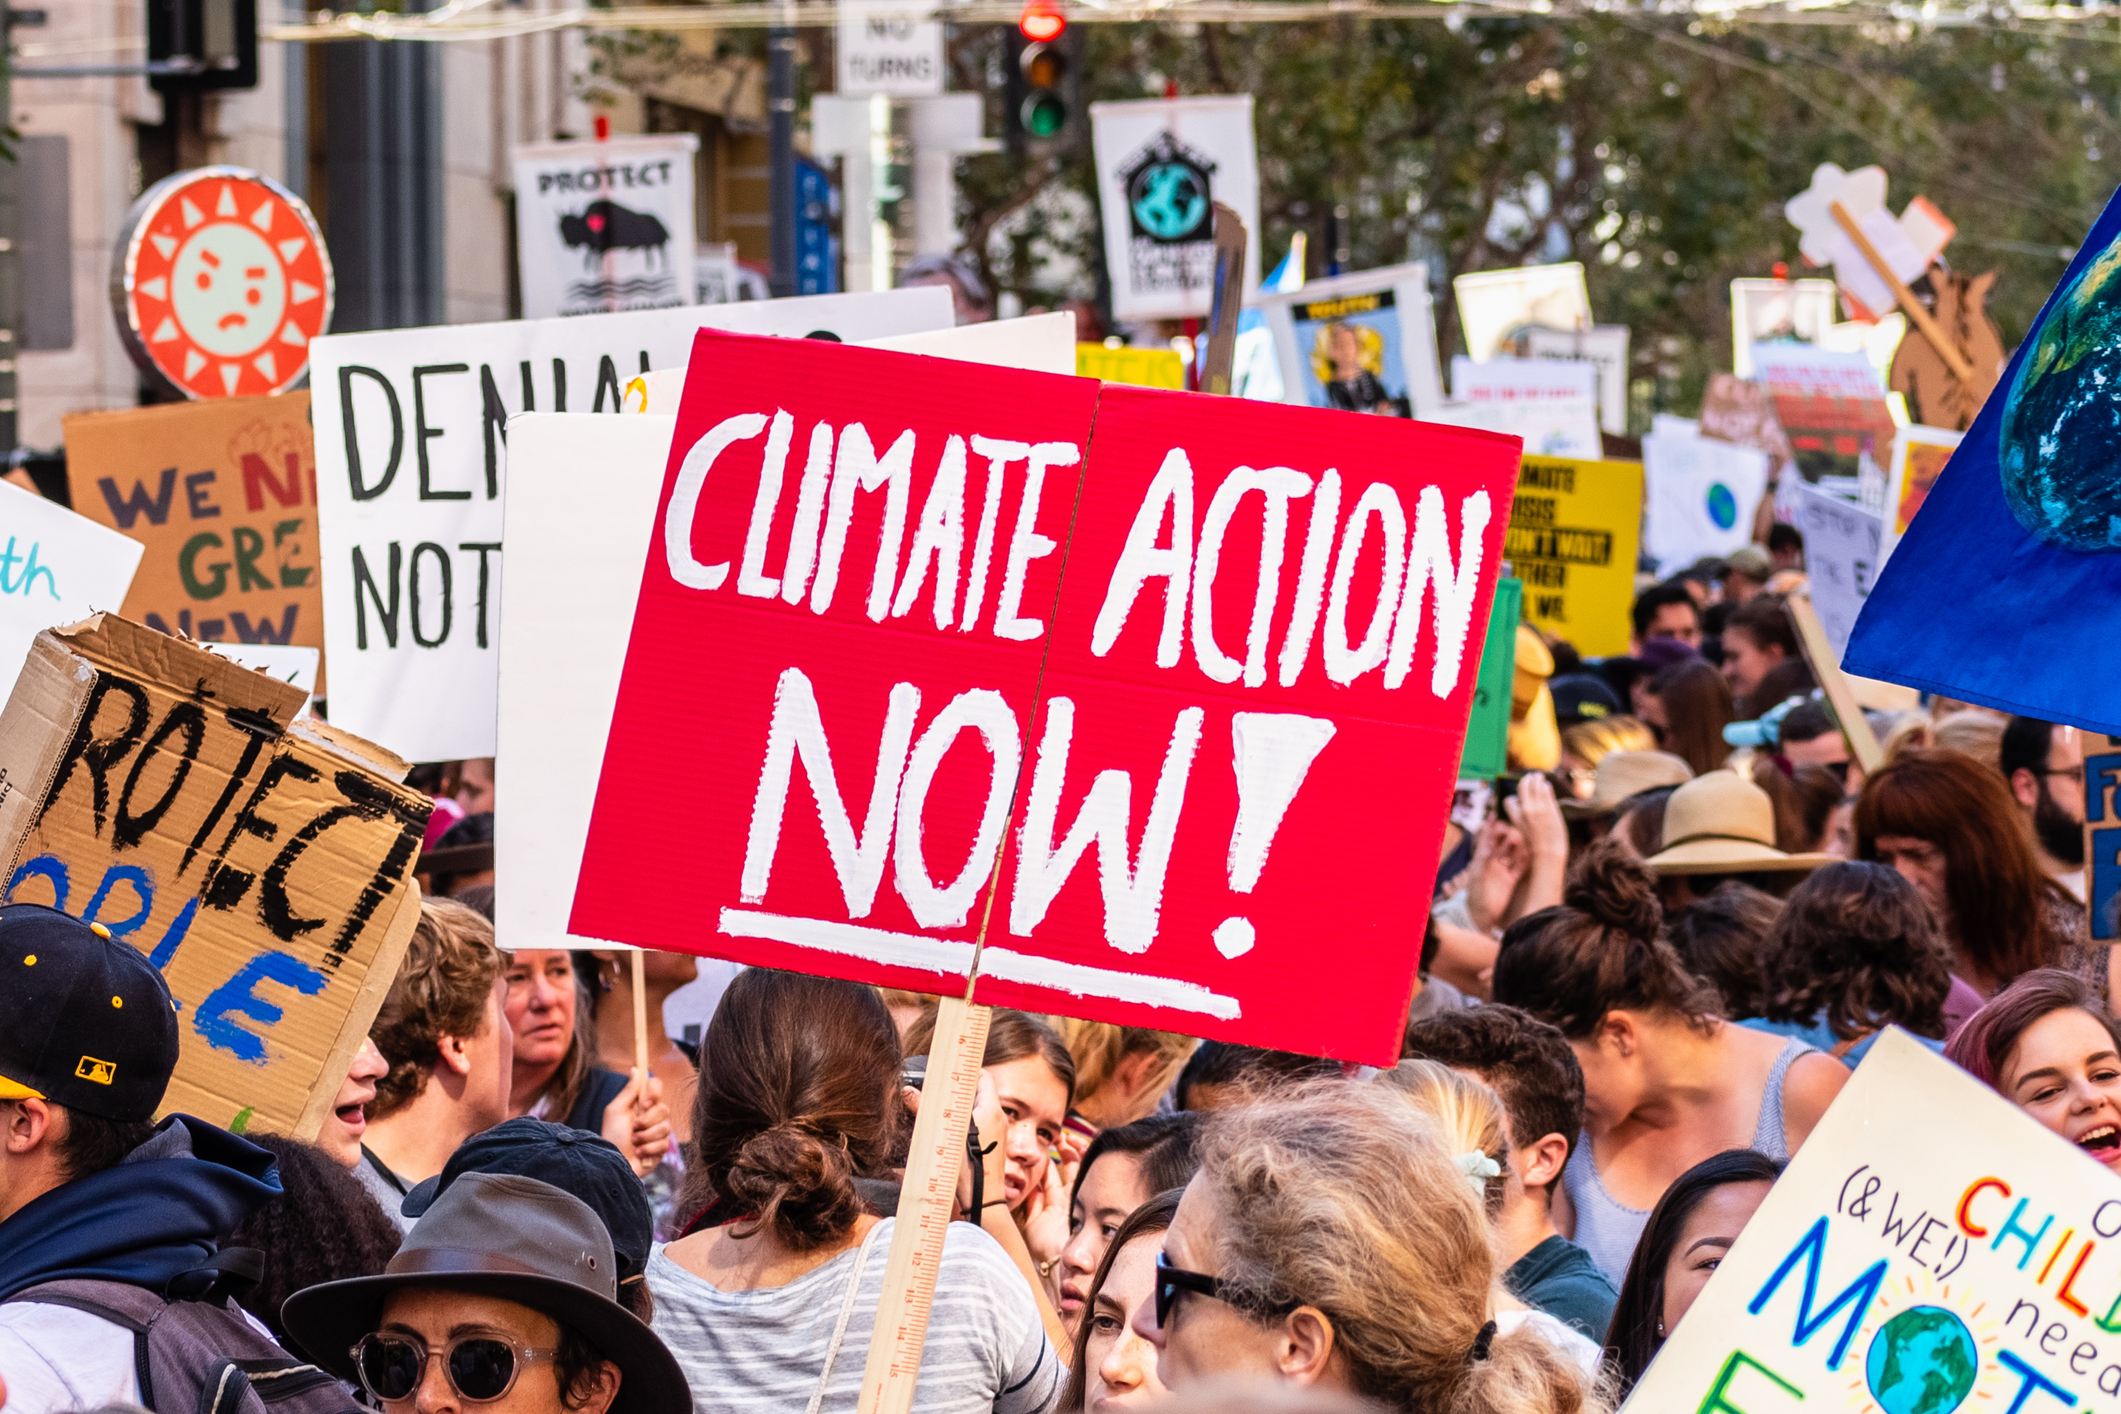 We must act now to deal with the planetary emergency